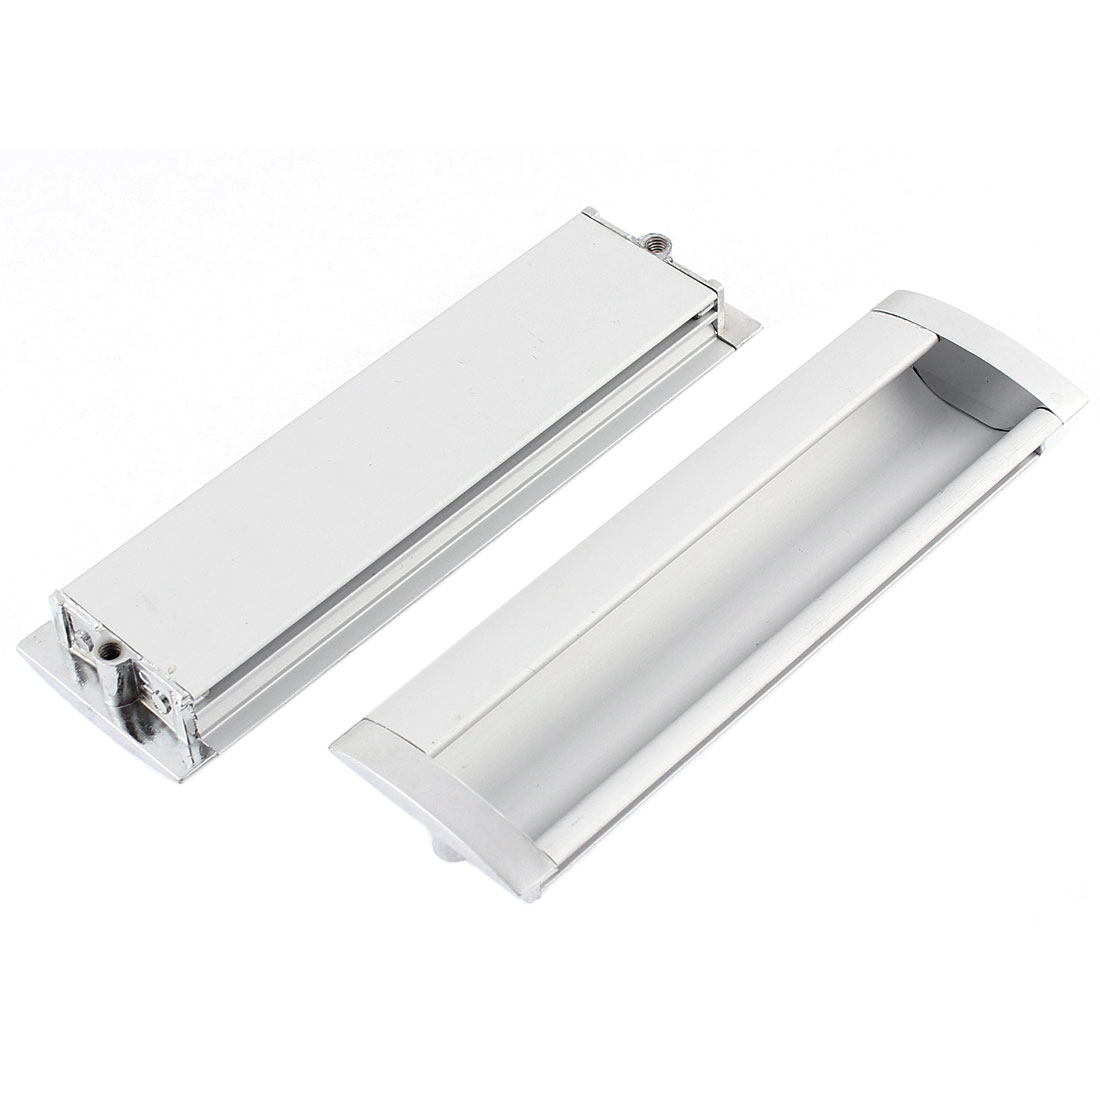 Cabinet Sliding Door Aluminium Alloy Rectangle Flush Recessed Pull Handle 140 x 42mm 2Pcs